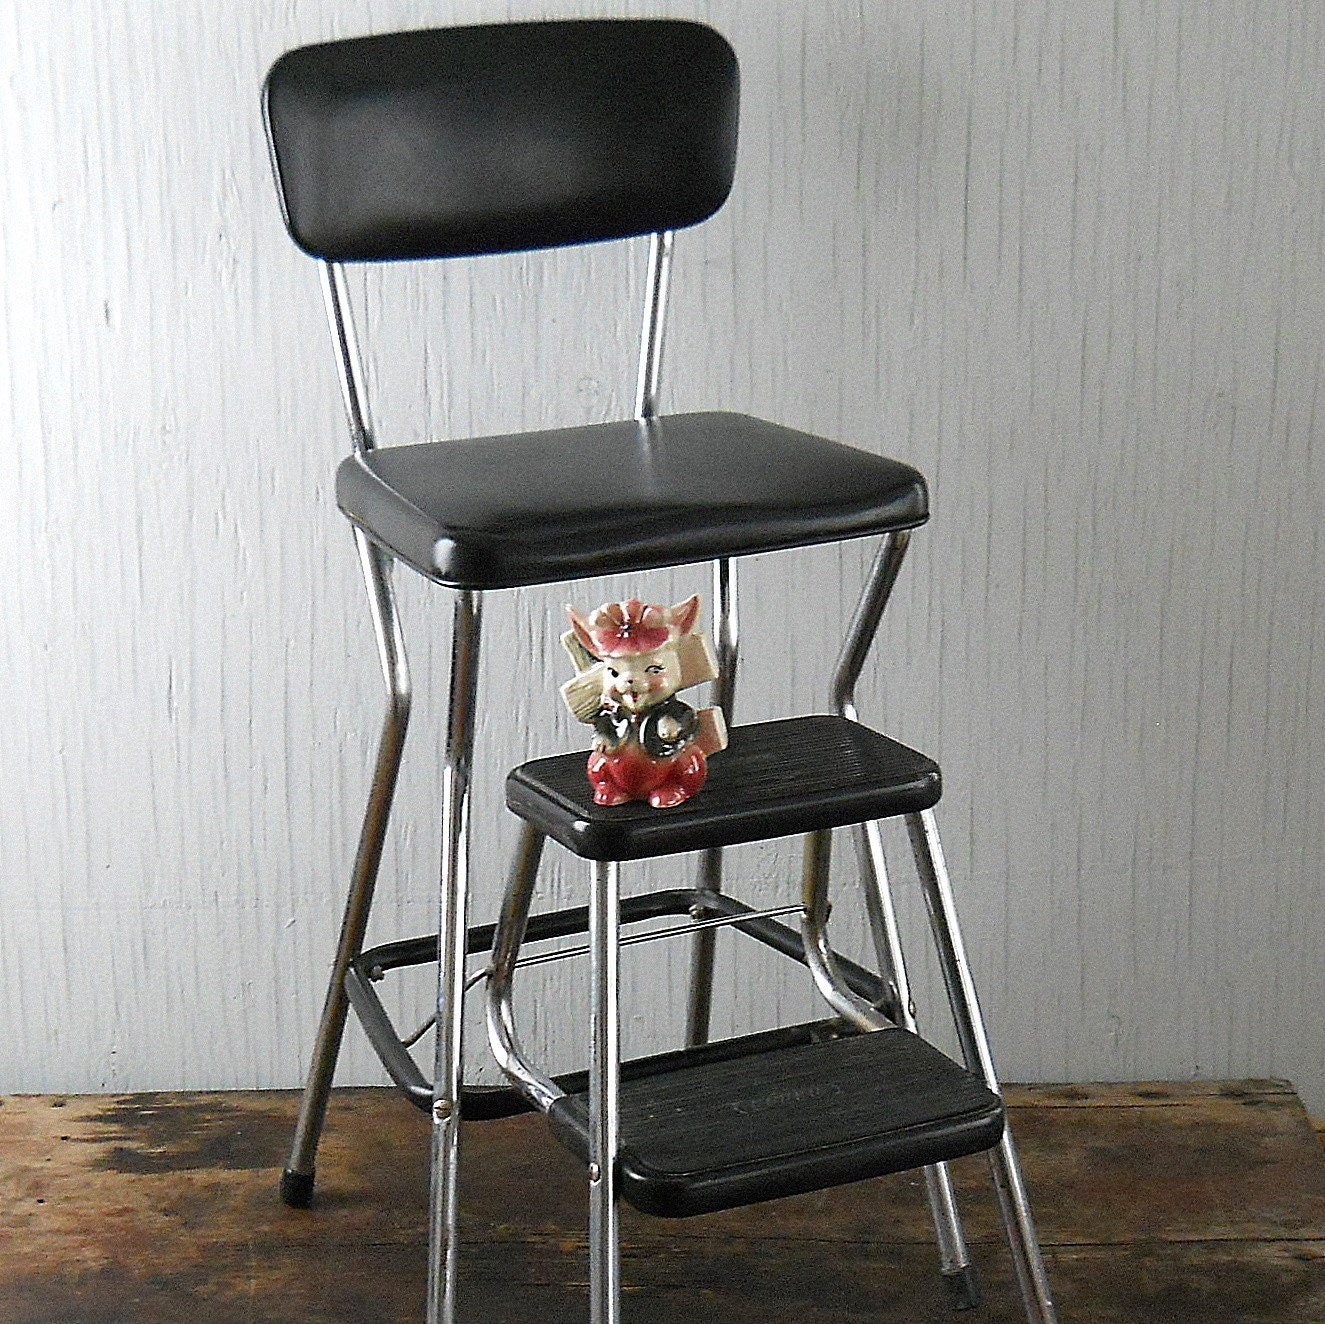 Vintage Cosco Step Stool Chair By Lisabretrostyle2 On Etsy